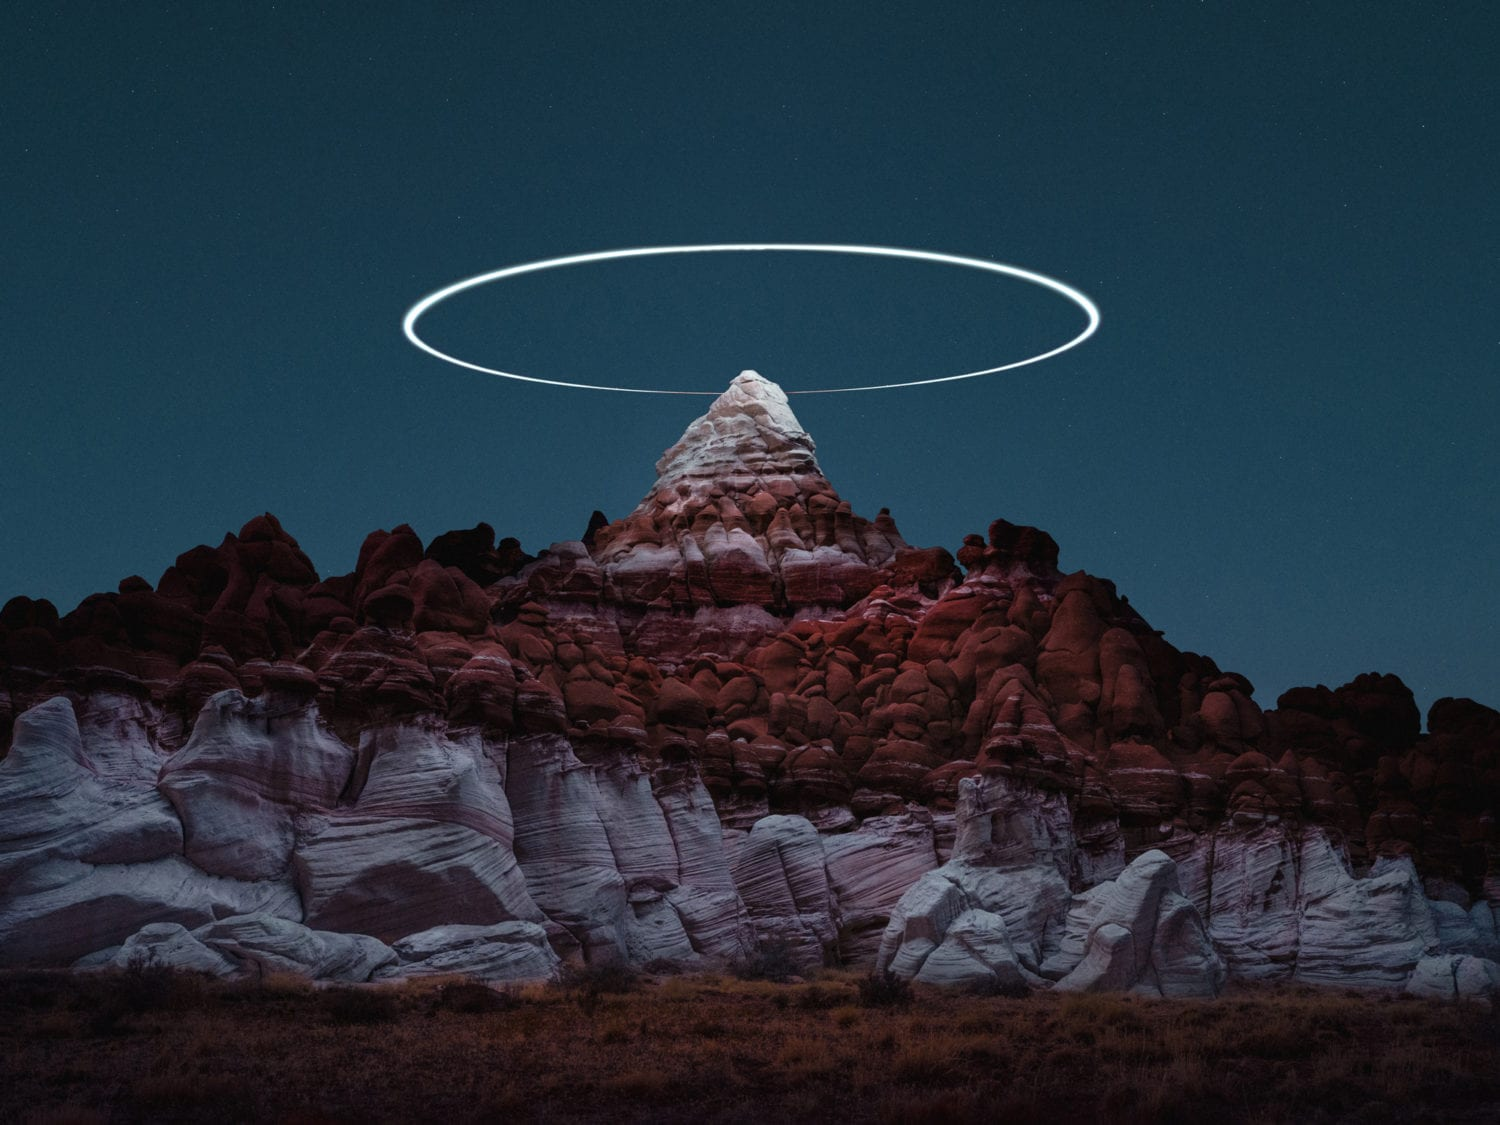 Reuben Wu Captures Light Paths With Drones Above Natural Landscapes Yellowtrace 22